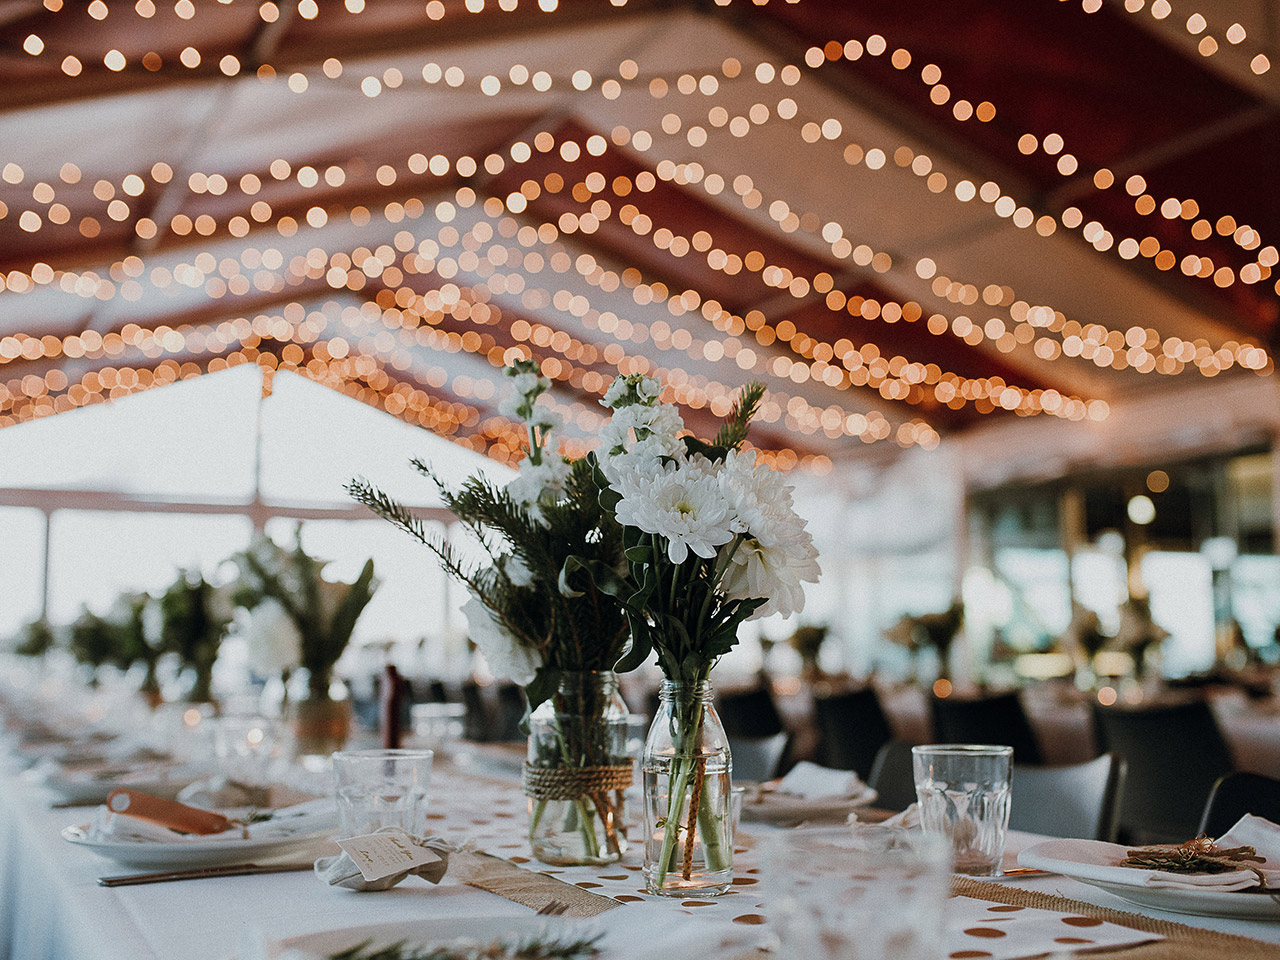 Inside the Function Room with Flower Centerpieces in Long Tables, String Lights and Drapings on the Ceiling